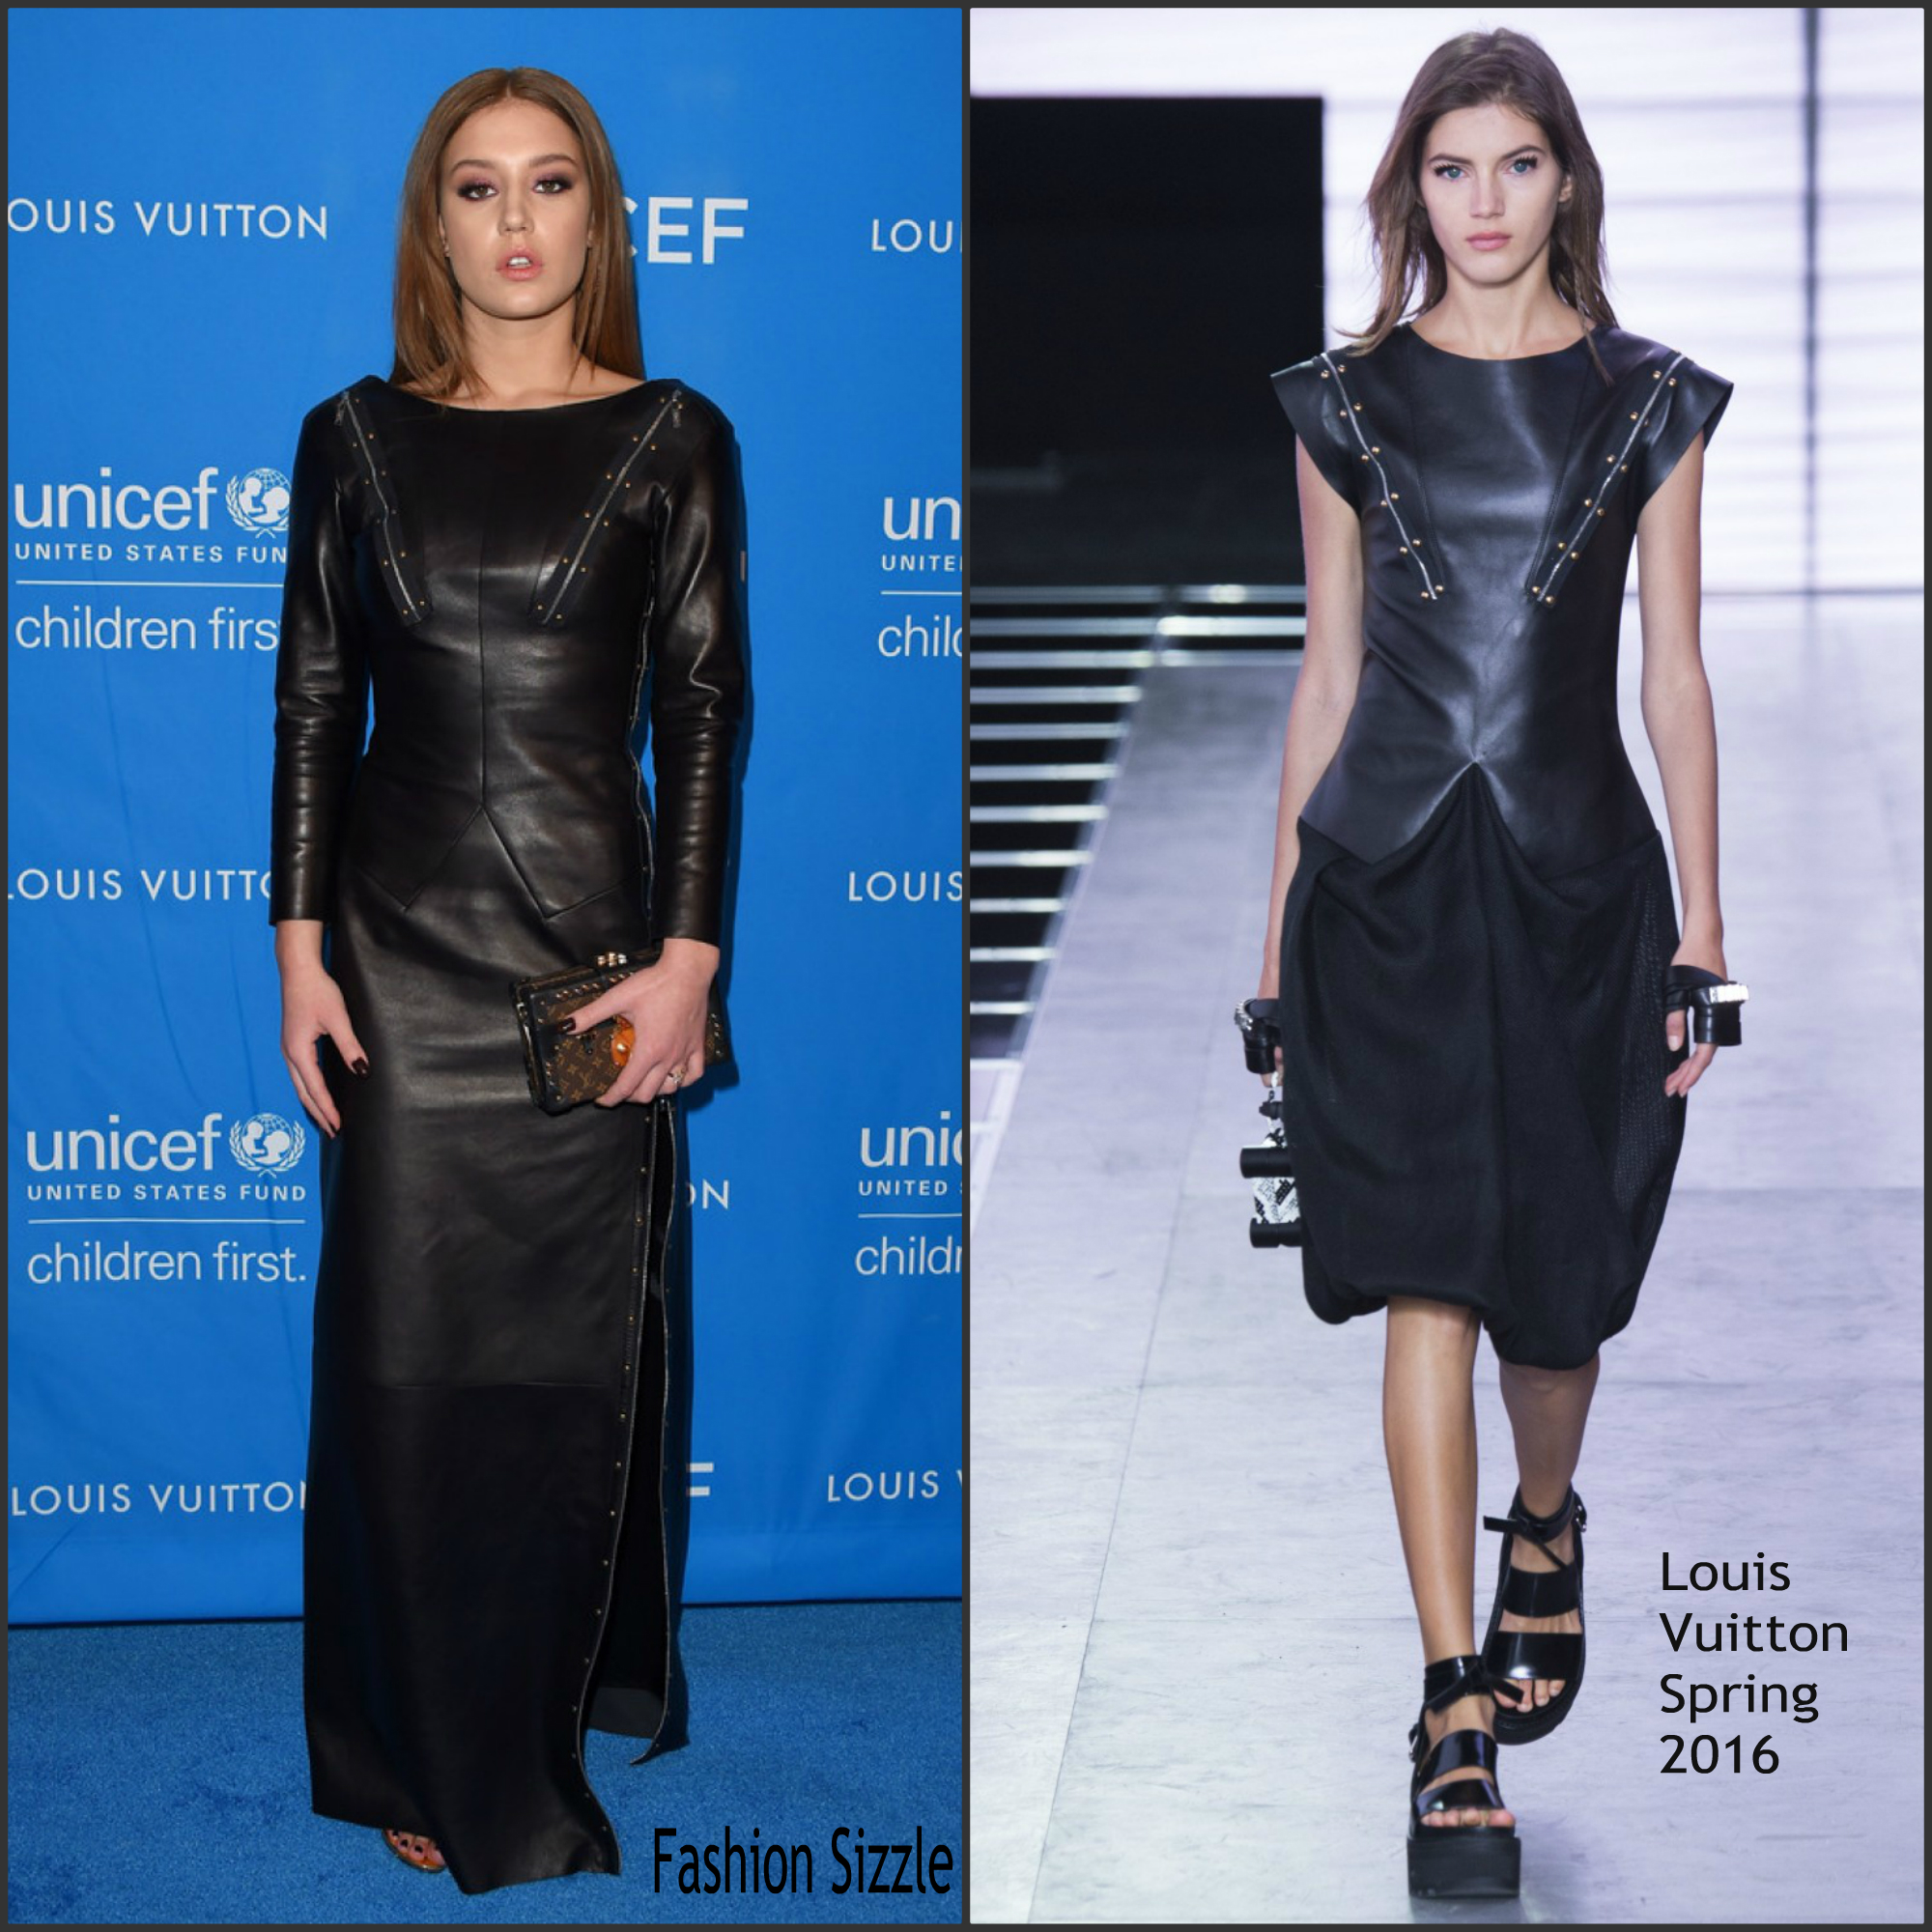 adele-exarchopoulos-in-louis-vuitton-6th-biennial-unicef-ball